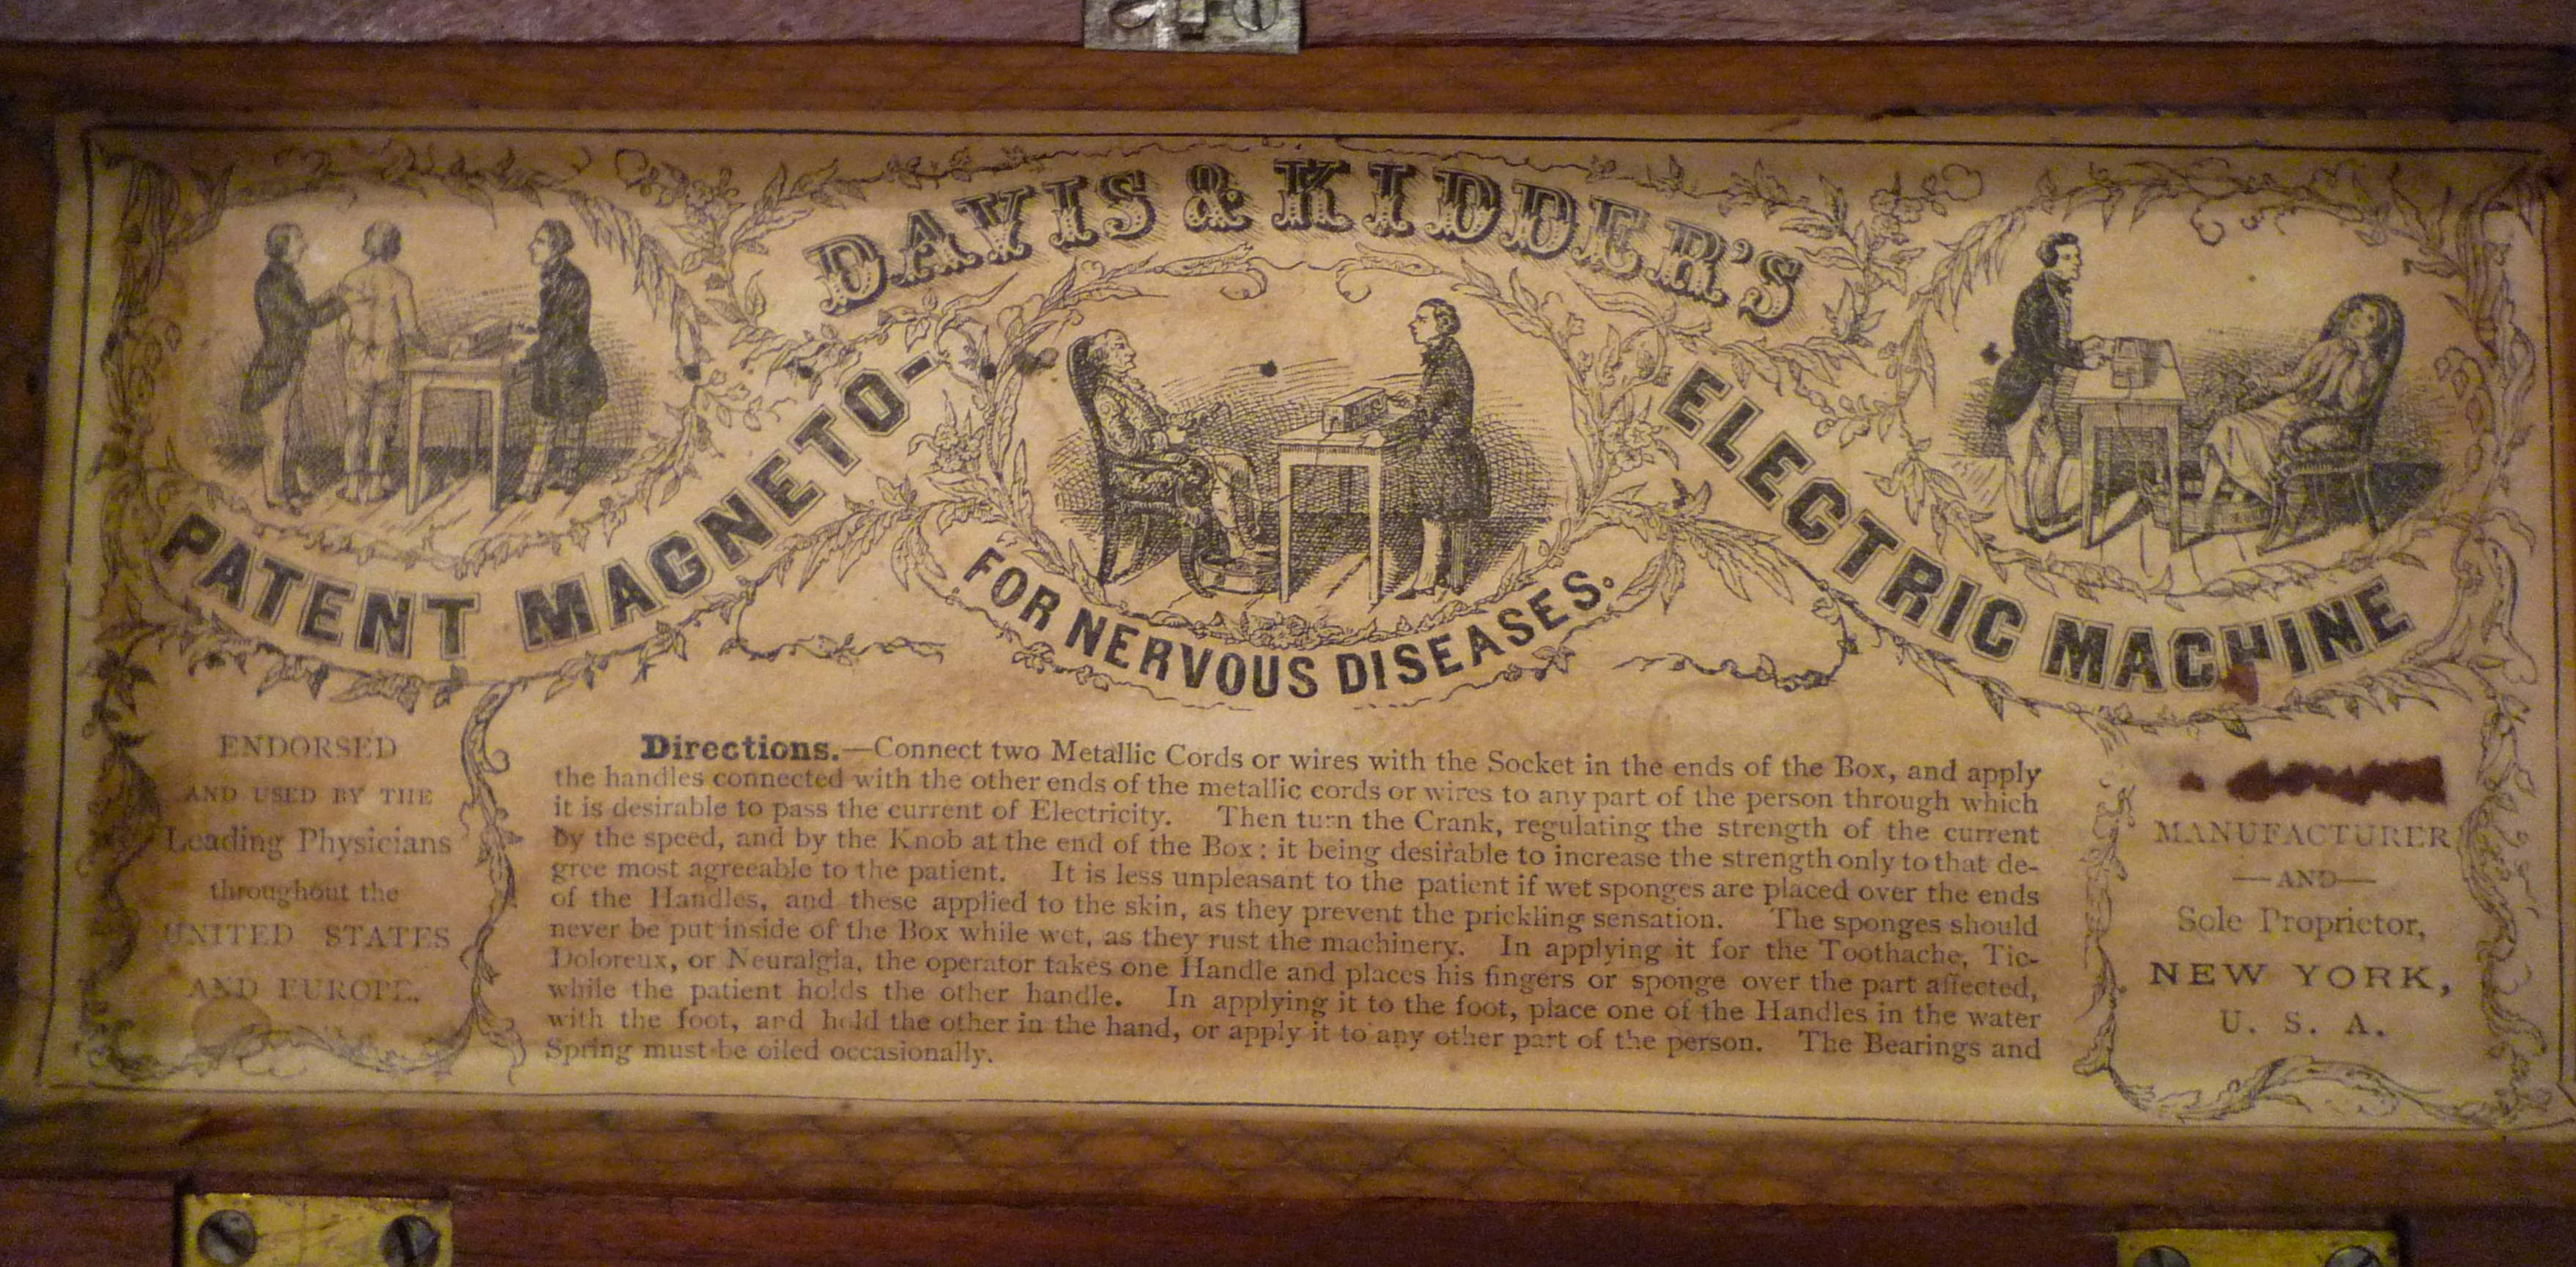 Davis and Kidder's Magneto-Electric machine for nervous diseases